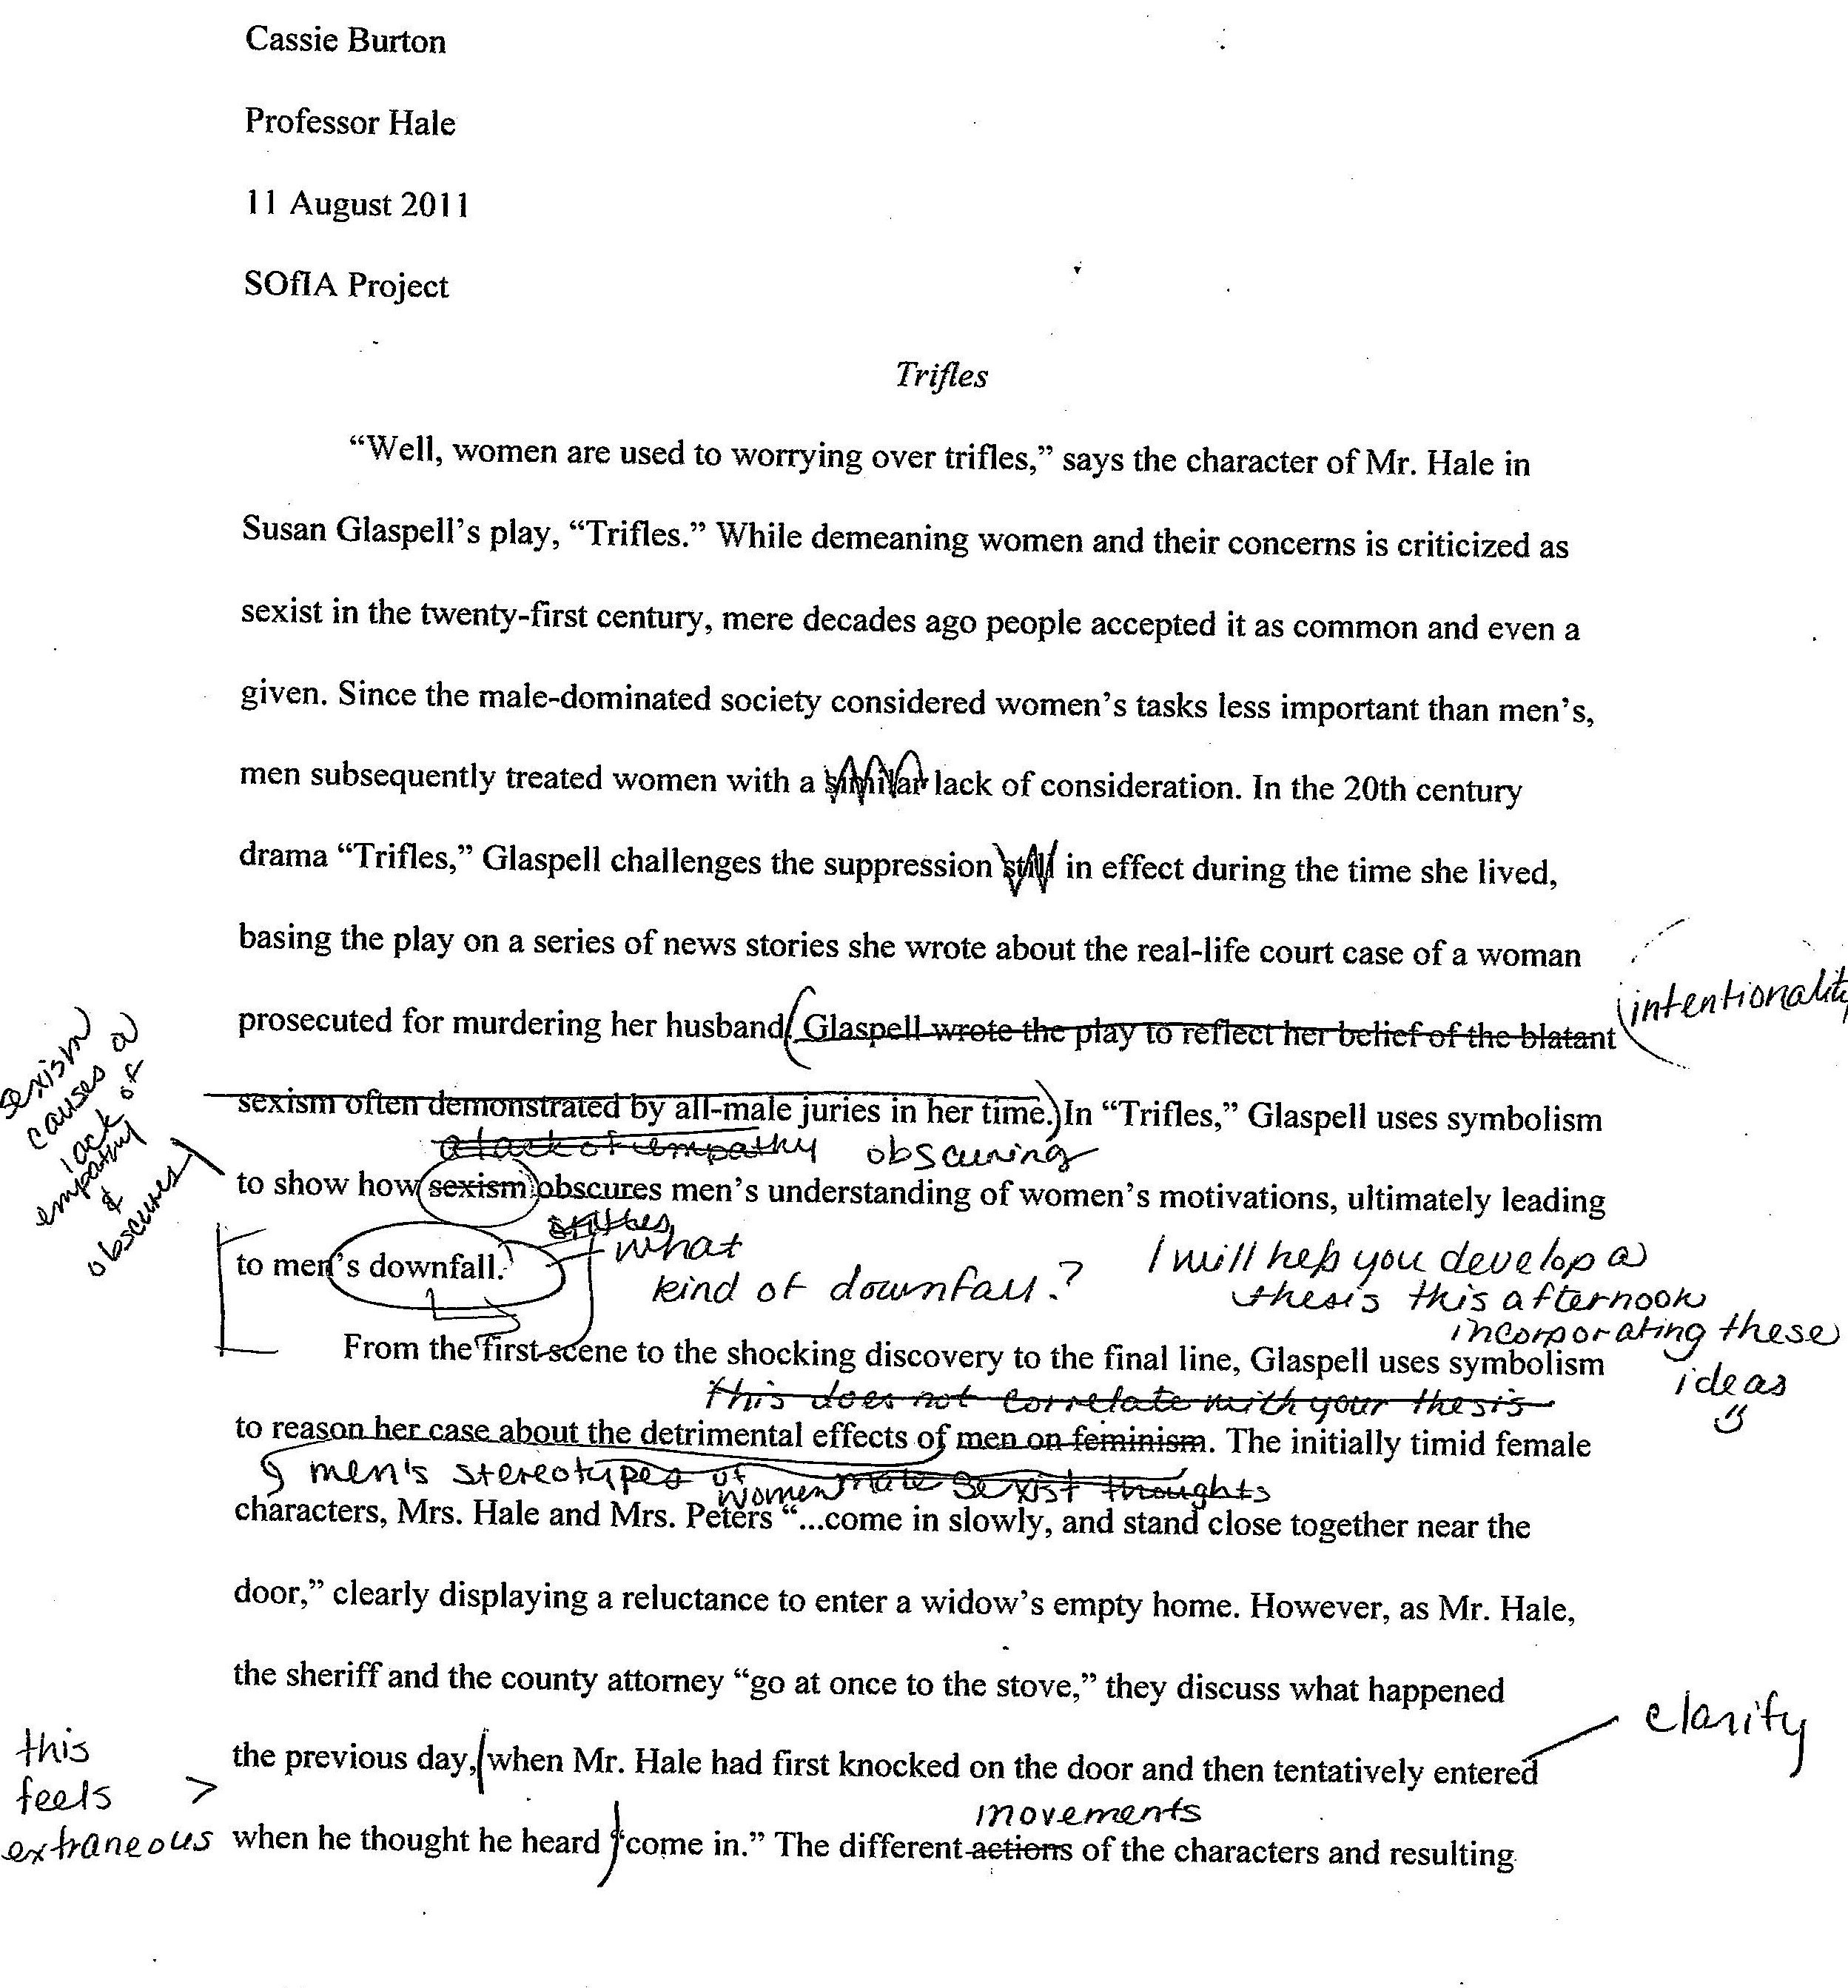 theme analysis essay outline for an analytical essay outline for  trifles by susan glaspell students teaching english paper strategies second peer edit page 1